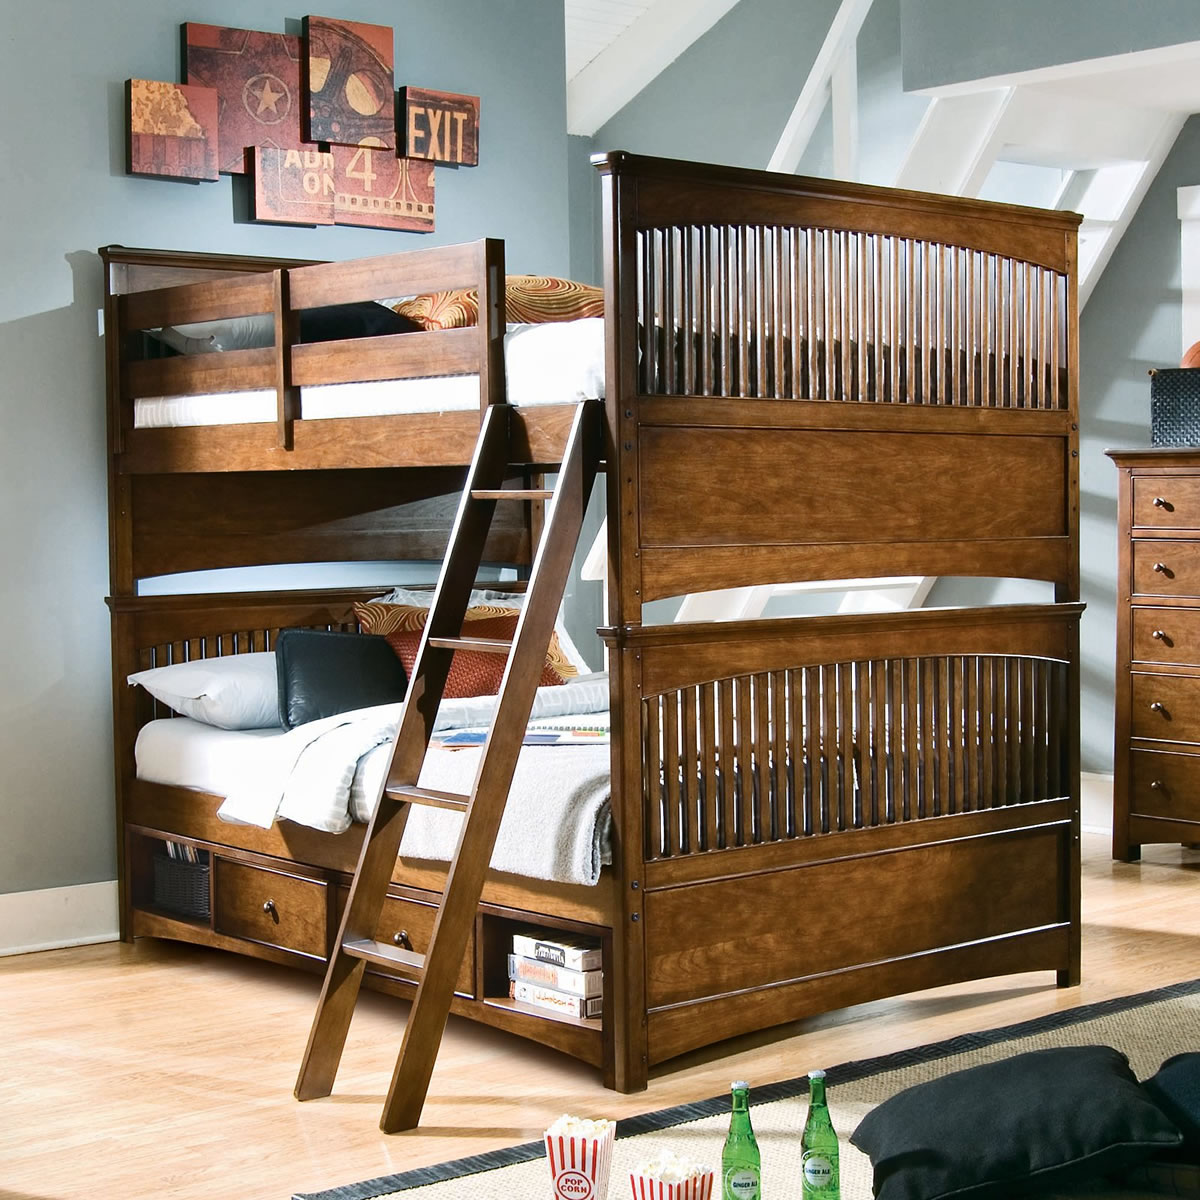 Toddler bunk beds and loft beds browse read reviews discover - Elite Crossover Full Over Full